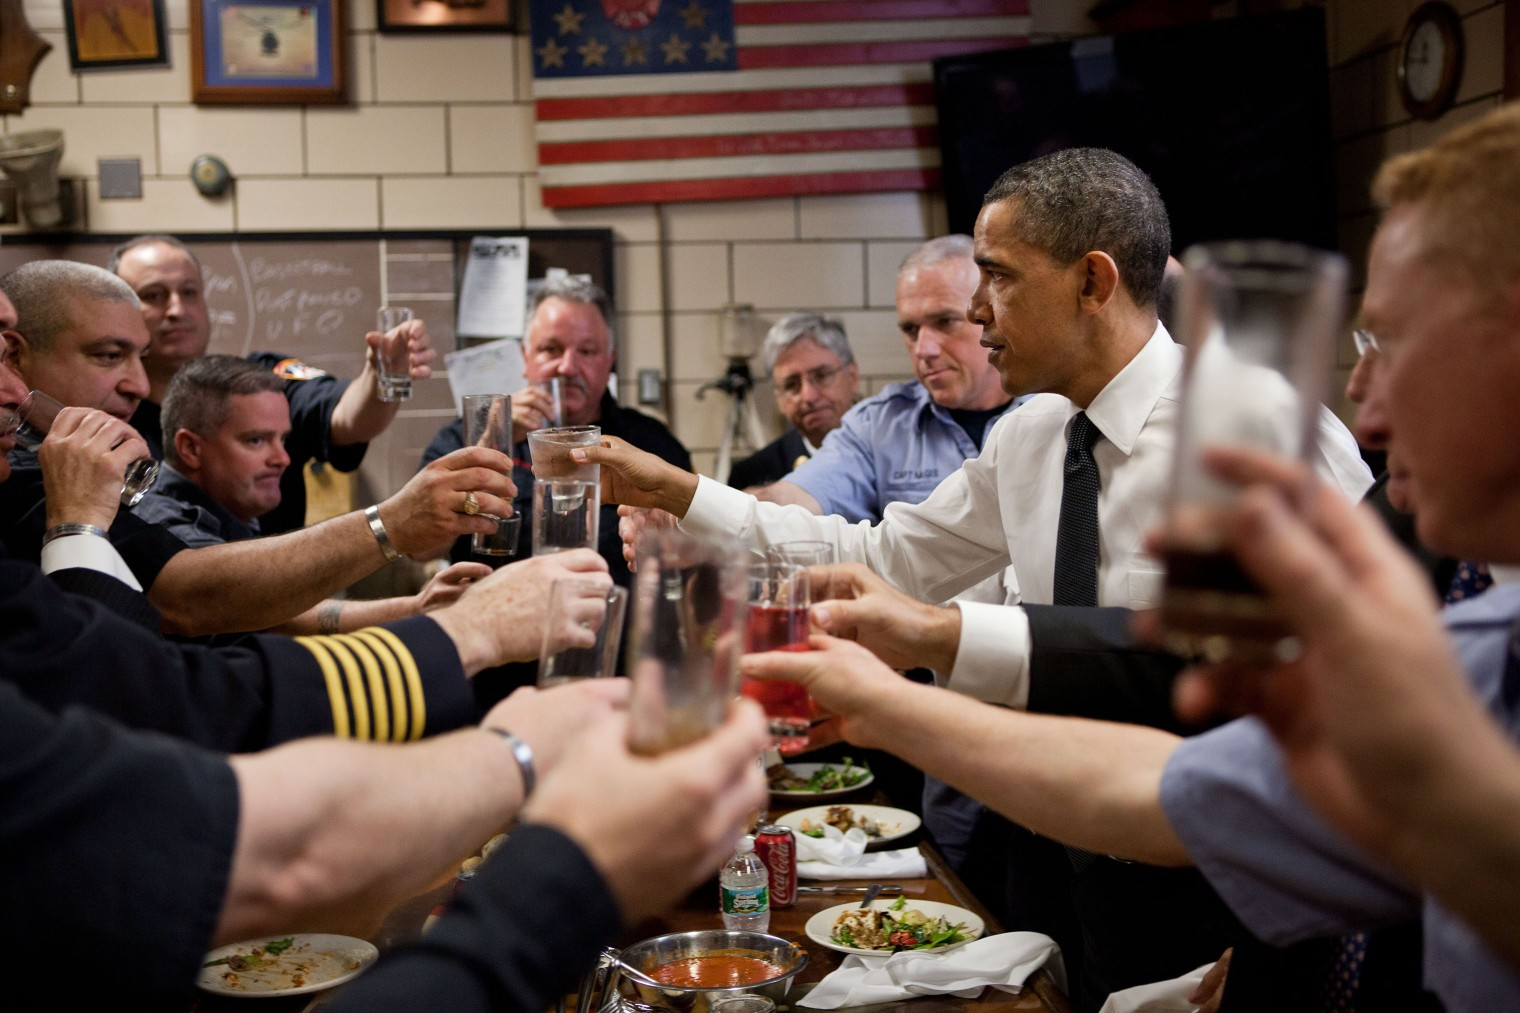 President Obama and firefighters toast during a lunch at Engine 54, Ladder 4, Battalion 9 Firehouse, that lost 15 firefighters on 9/11, in New York, on May 5, 2011.